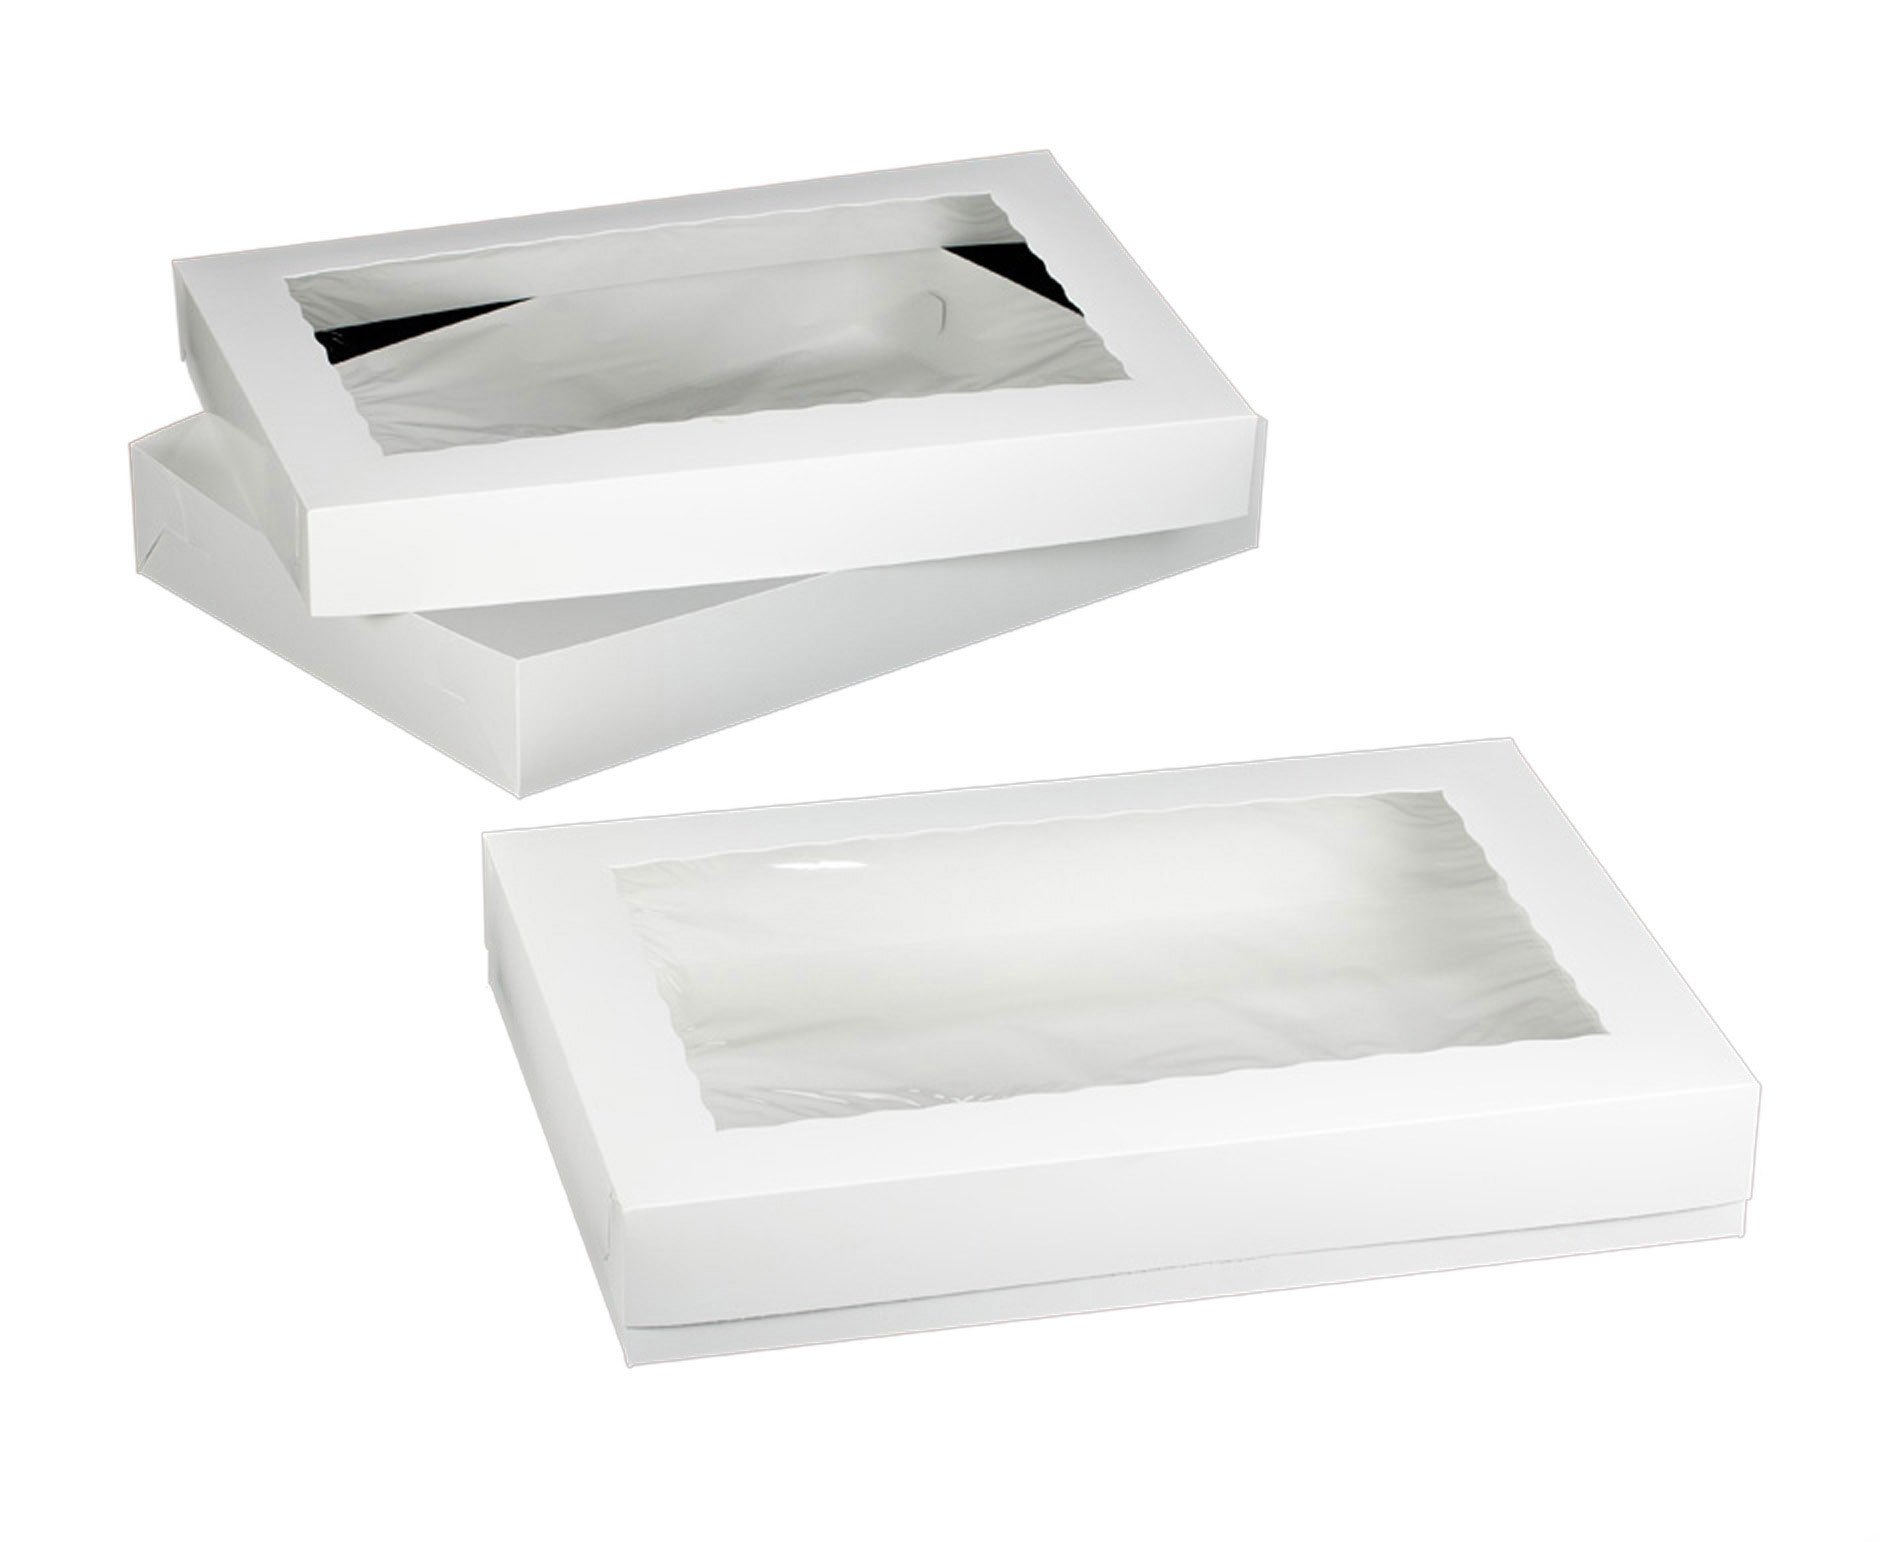 Dress My Cupcake Window Cupcake Box with Holder for 36 Standard Cupcakes, White, Set of 100